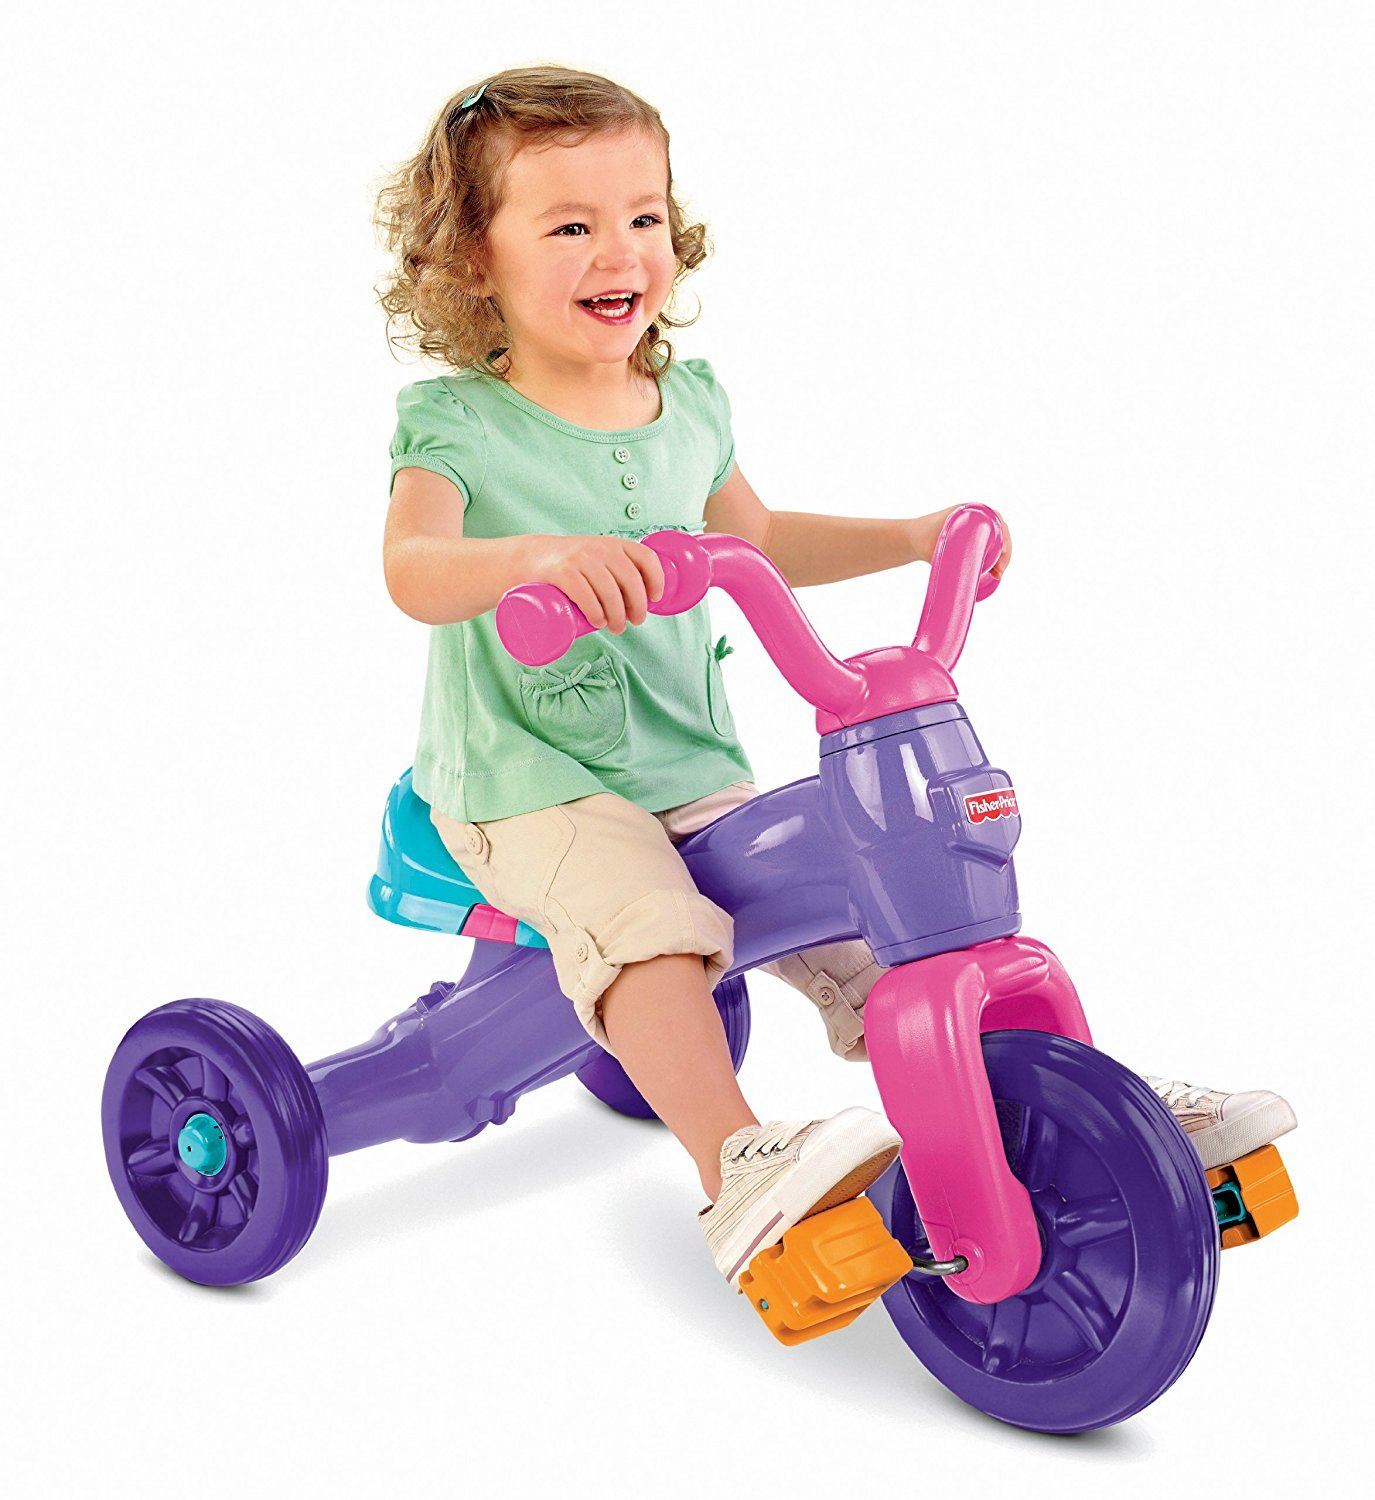 Fisher-Price [並行輸入品] Grow-With-Me B074TJC7MR Trike [並行輸入品] Fisher-Price B074TJC7MR, filer:70990124 --- number-directory.top